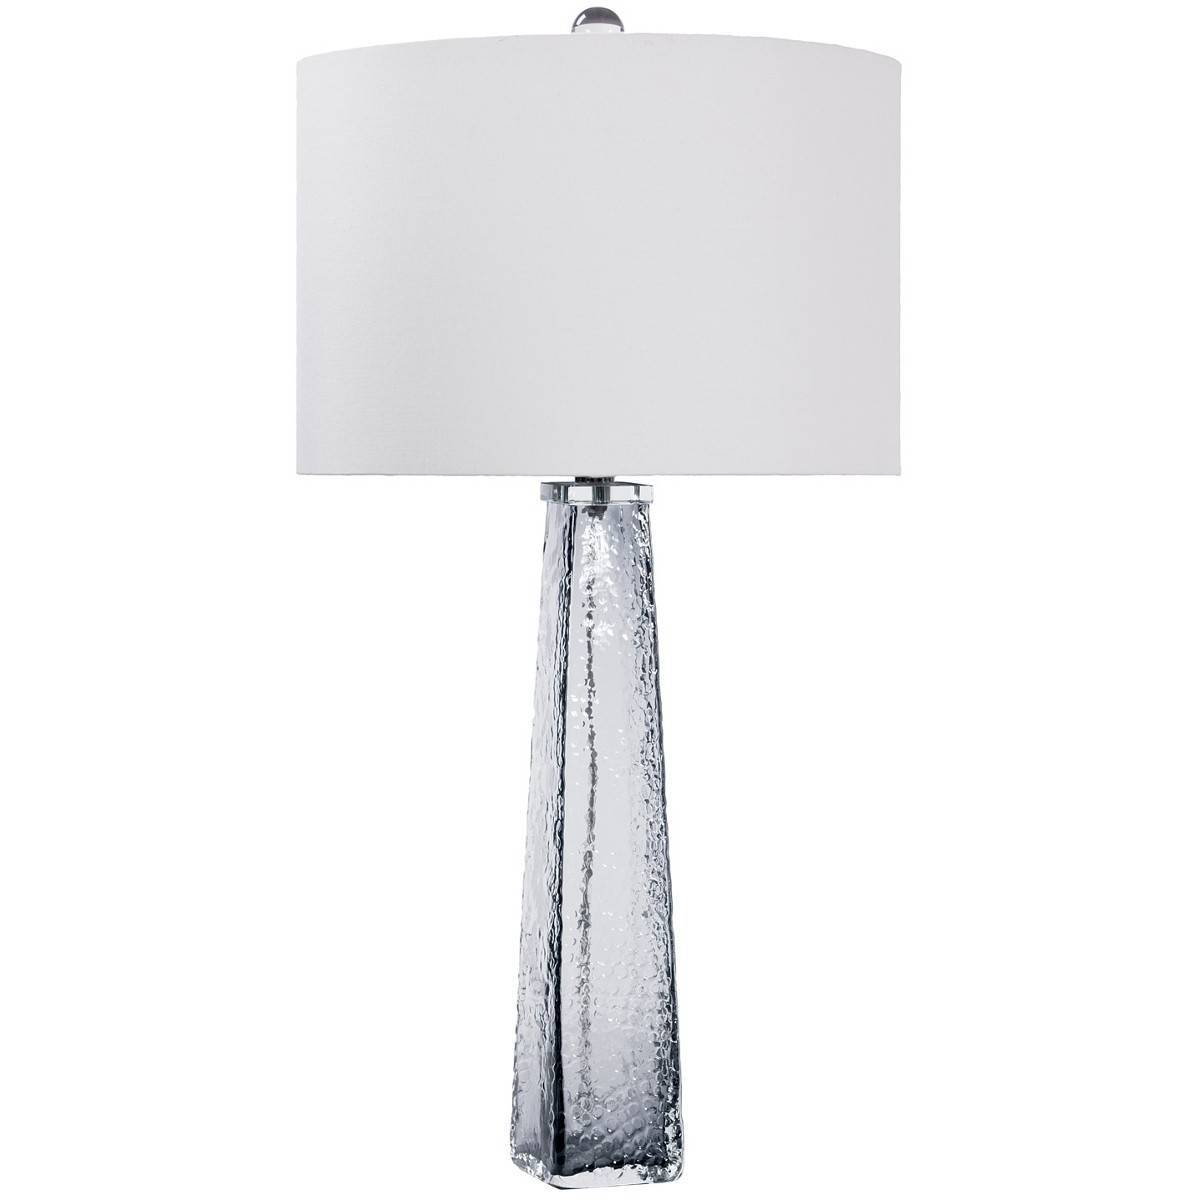 Decorating: Interesting Regina Andrew Lighting For Interior pertaining to Cb2 Pendant Lights Fixtures (Image 6 of 15)